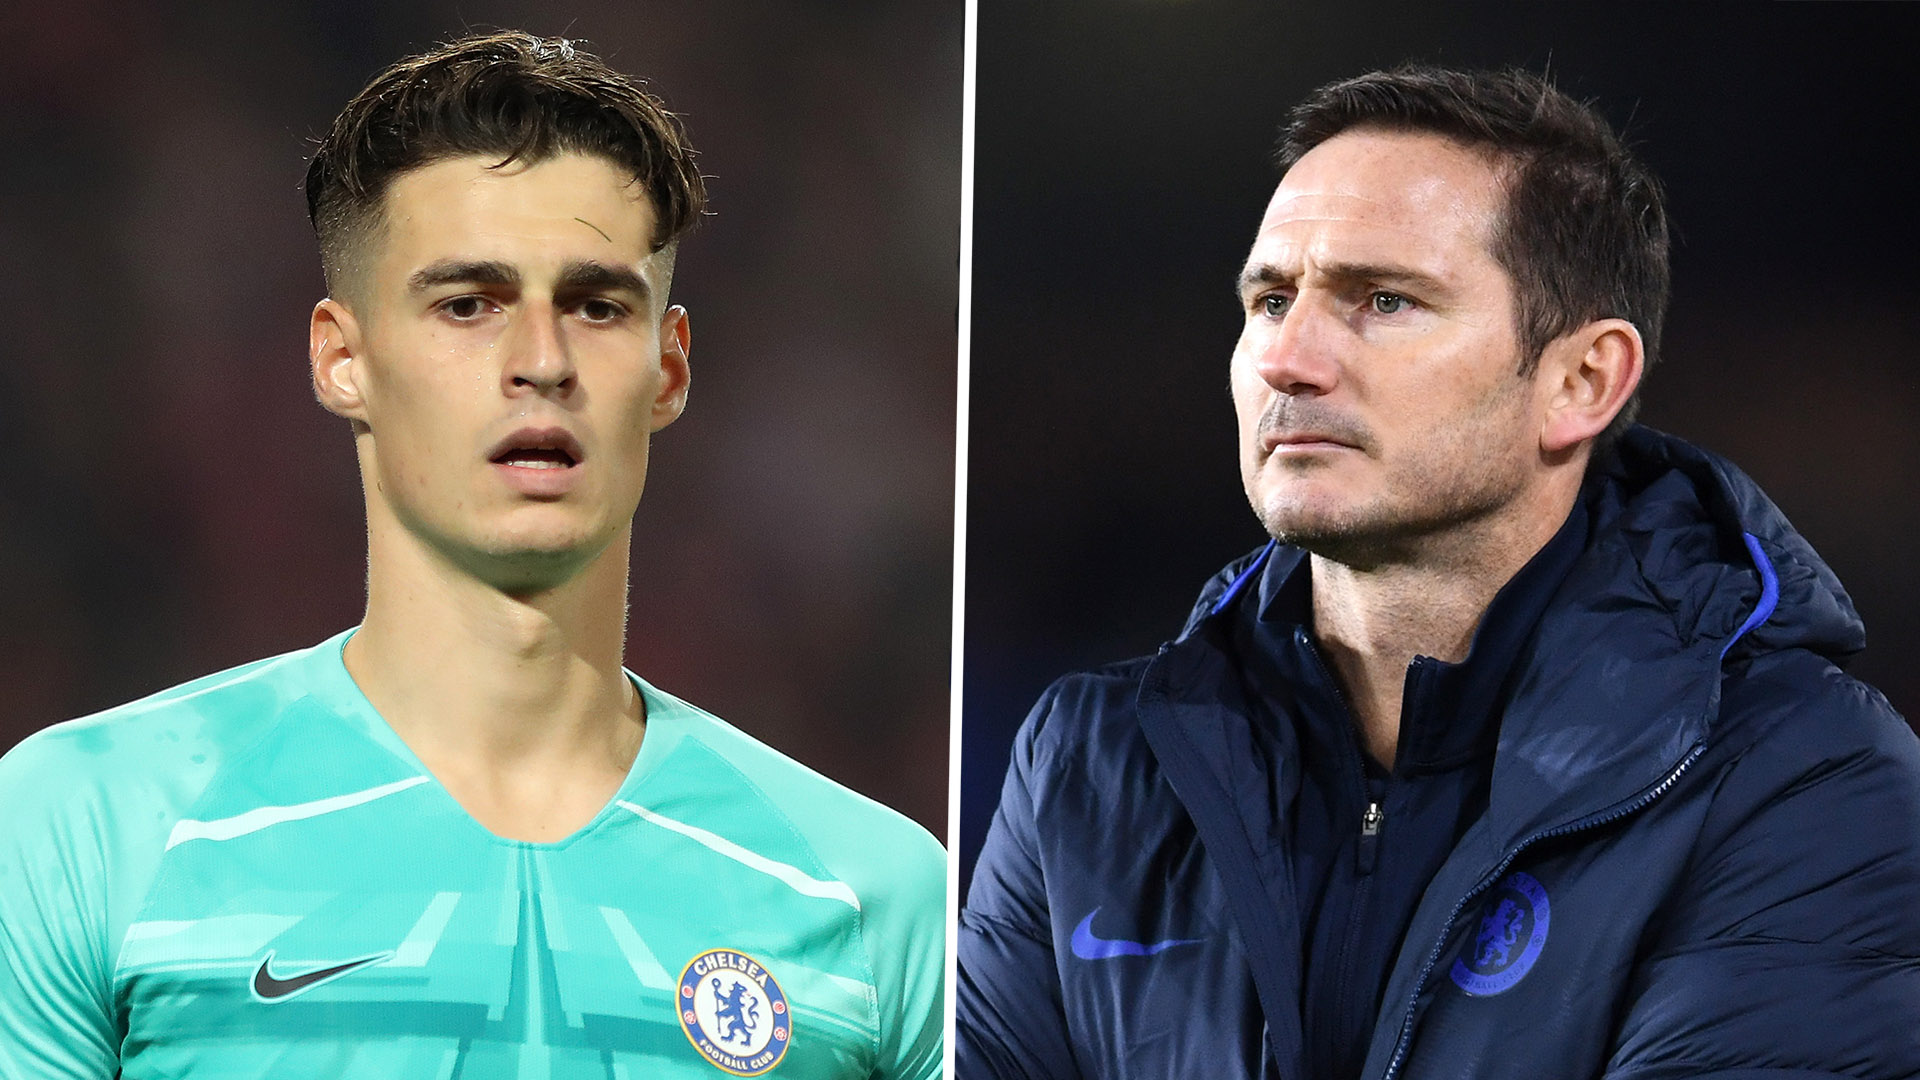 'I am very lucky to have Lampard as a coach' - Kepa delighted to work under a Chelsea 'legend'